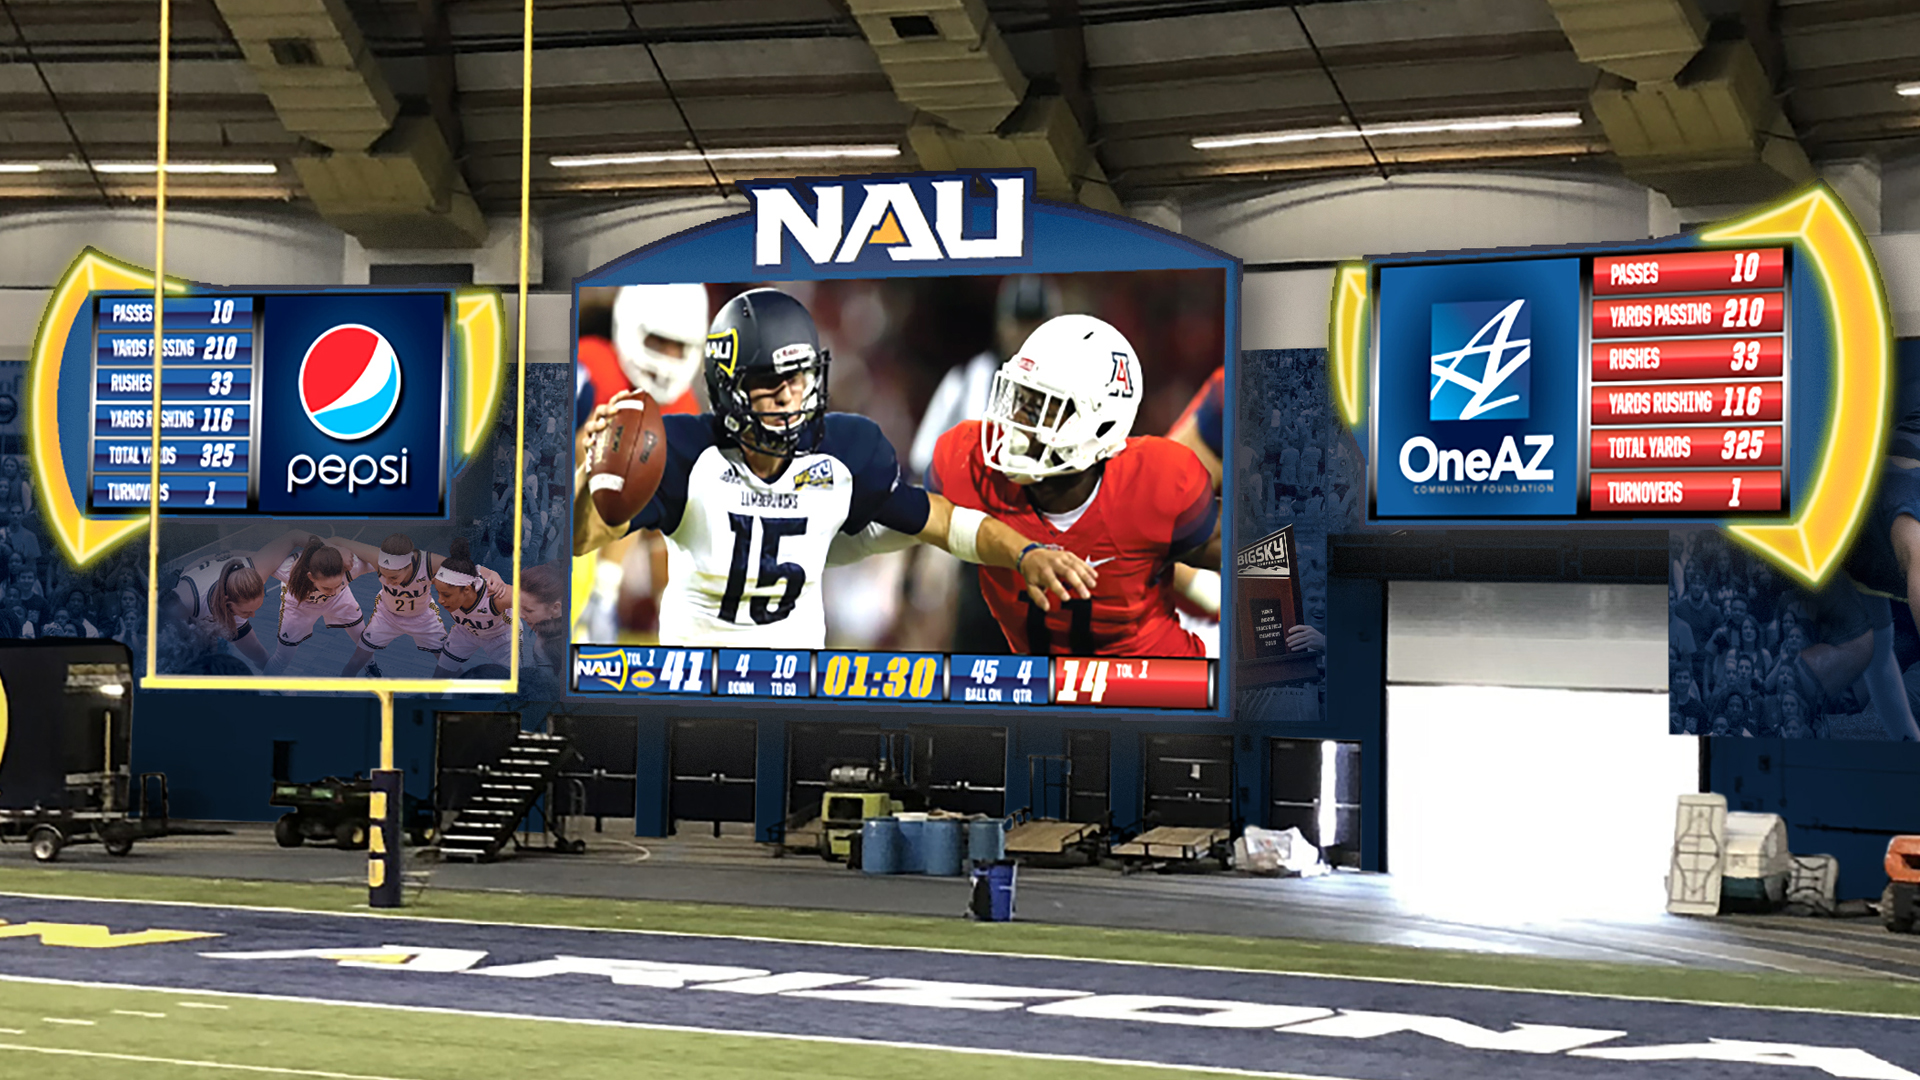 Anthony James Partners, AJP, NAU, Northern Arizona University, Walkup Skydome, J. Lawrence Walkup Skydome, Lumberjacks, College Sports, collegiate sports, LED display, videoboard, video board, scoreboard, football, basketball, Big Sky Conference, NCAA, intercollegiate, AV Consultant, A/V consultant, Owner's Representative, scoreboard, LED displays, College Football, scoring controllers, locker room clocks, play clocks